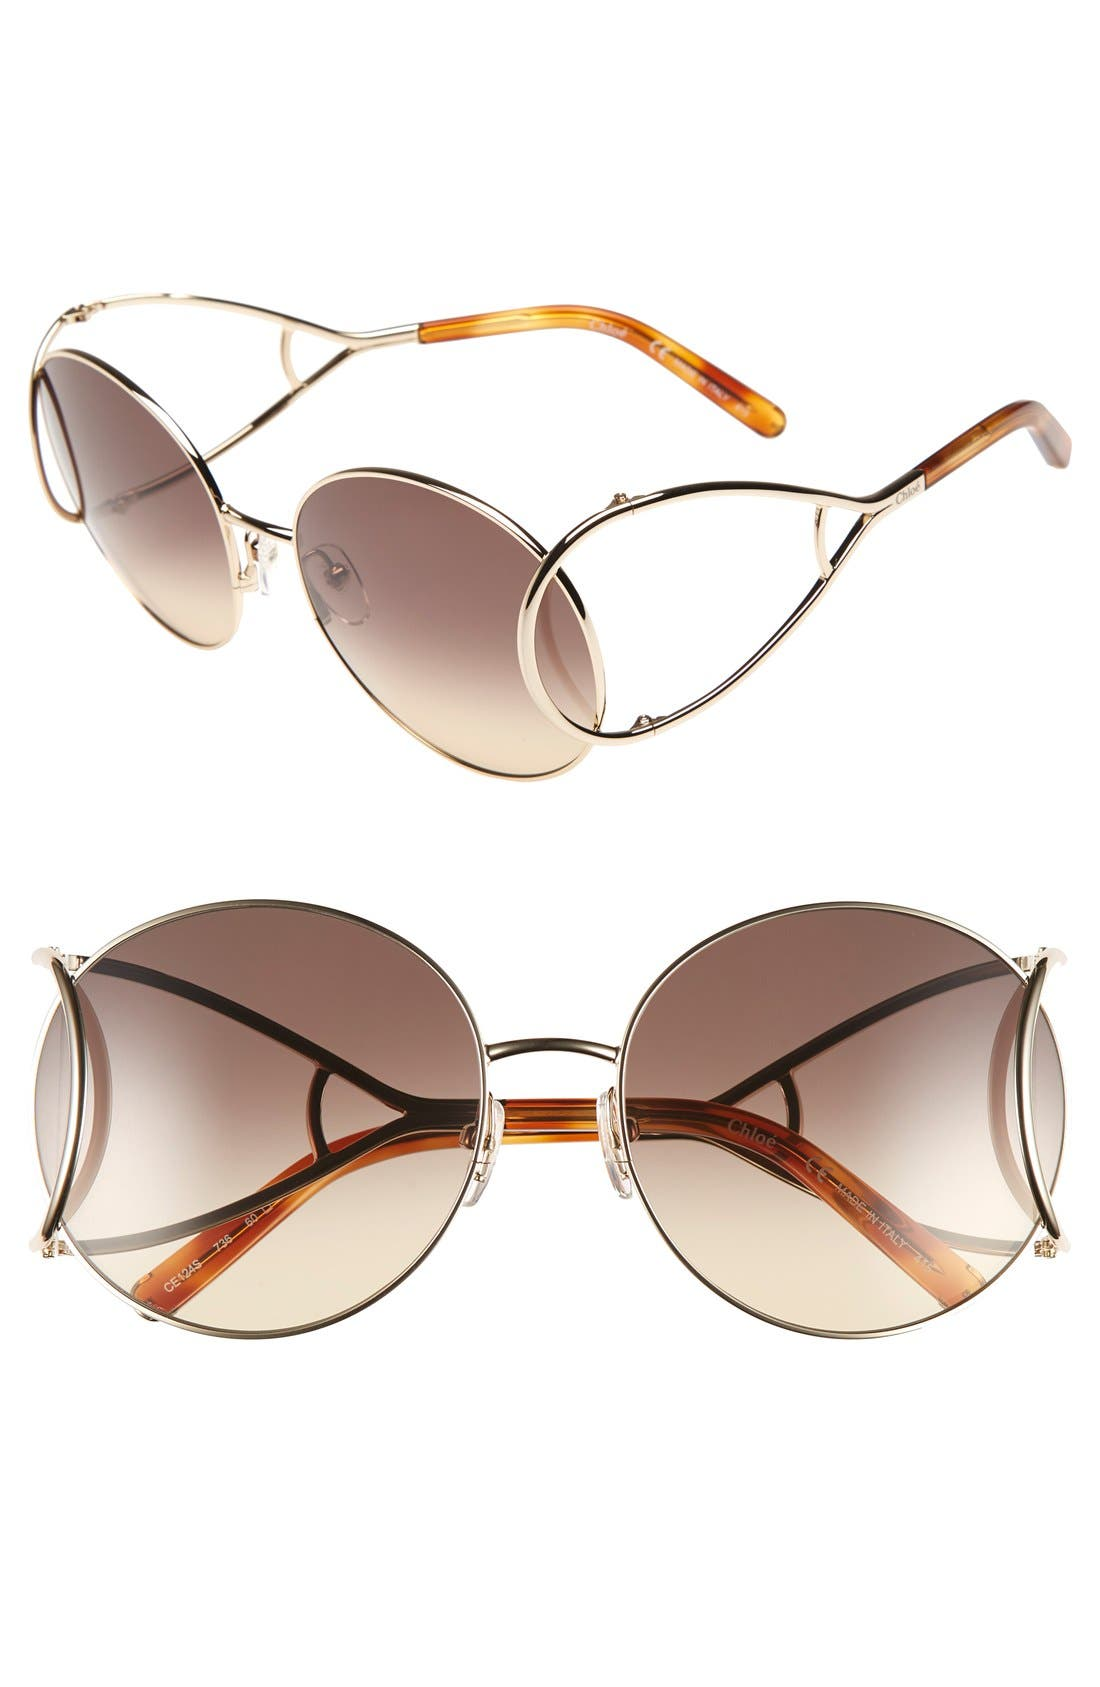 CHLOÉ Jackson 60mm Round Sunglasses